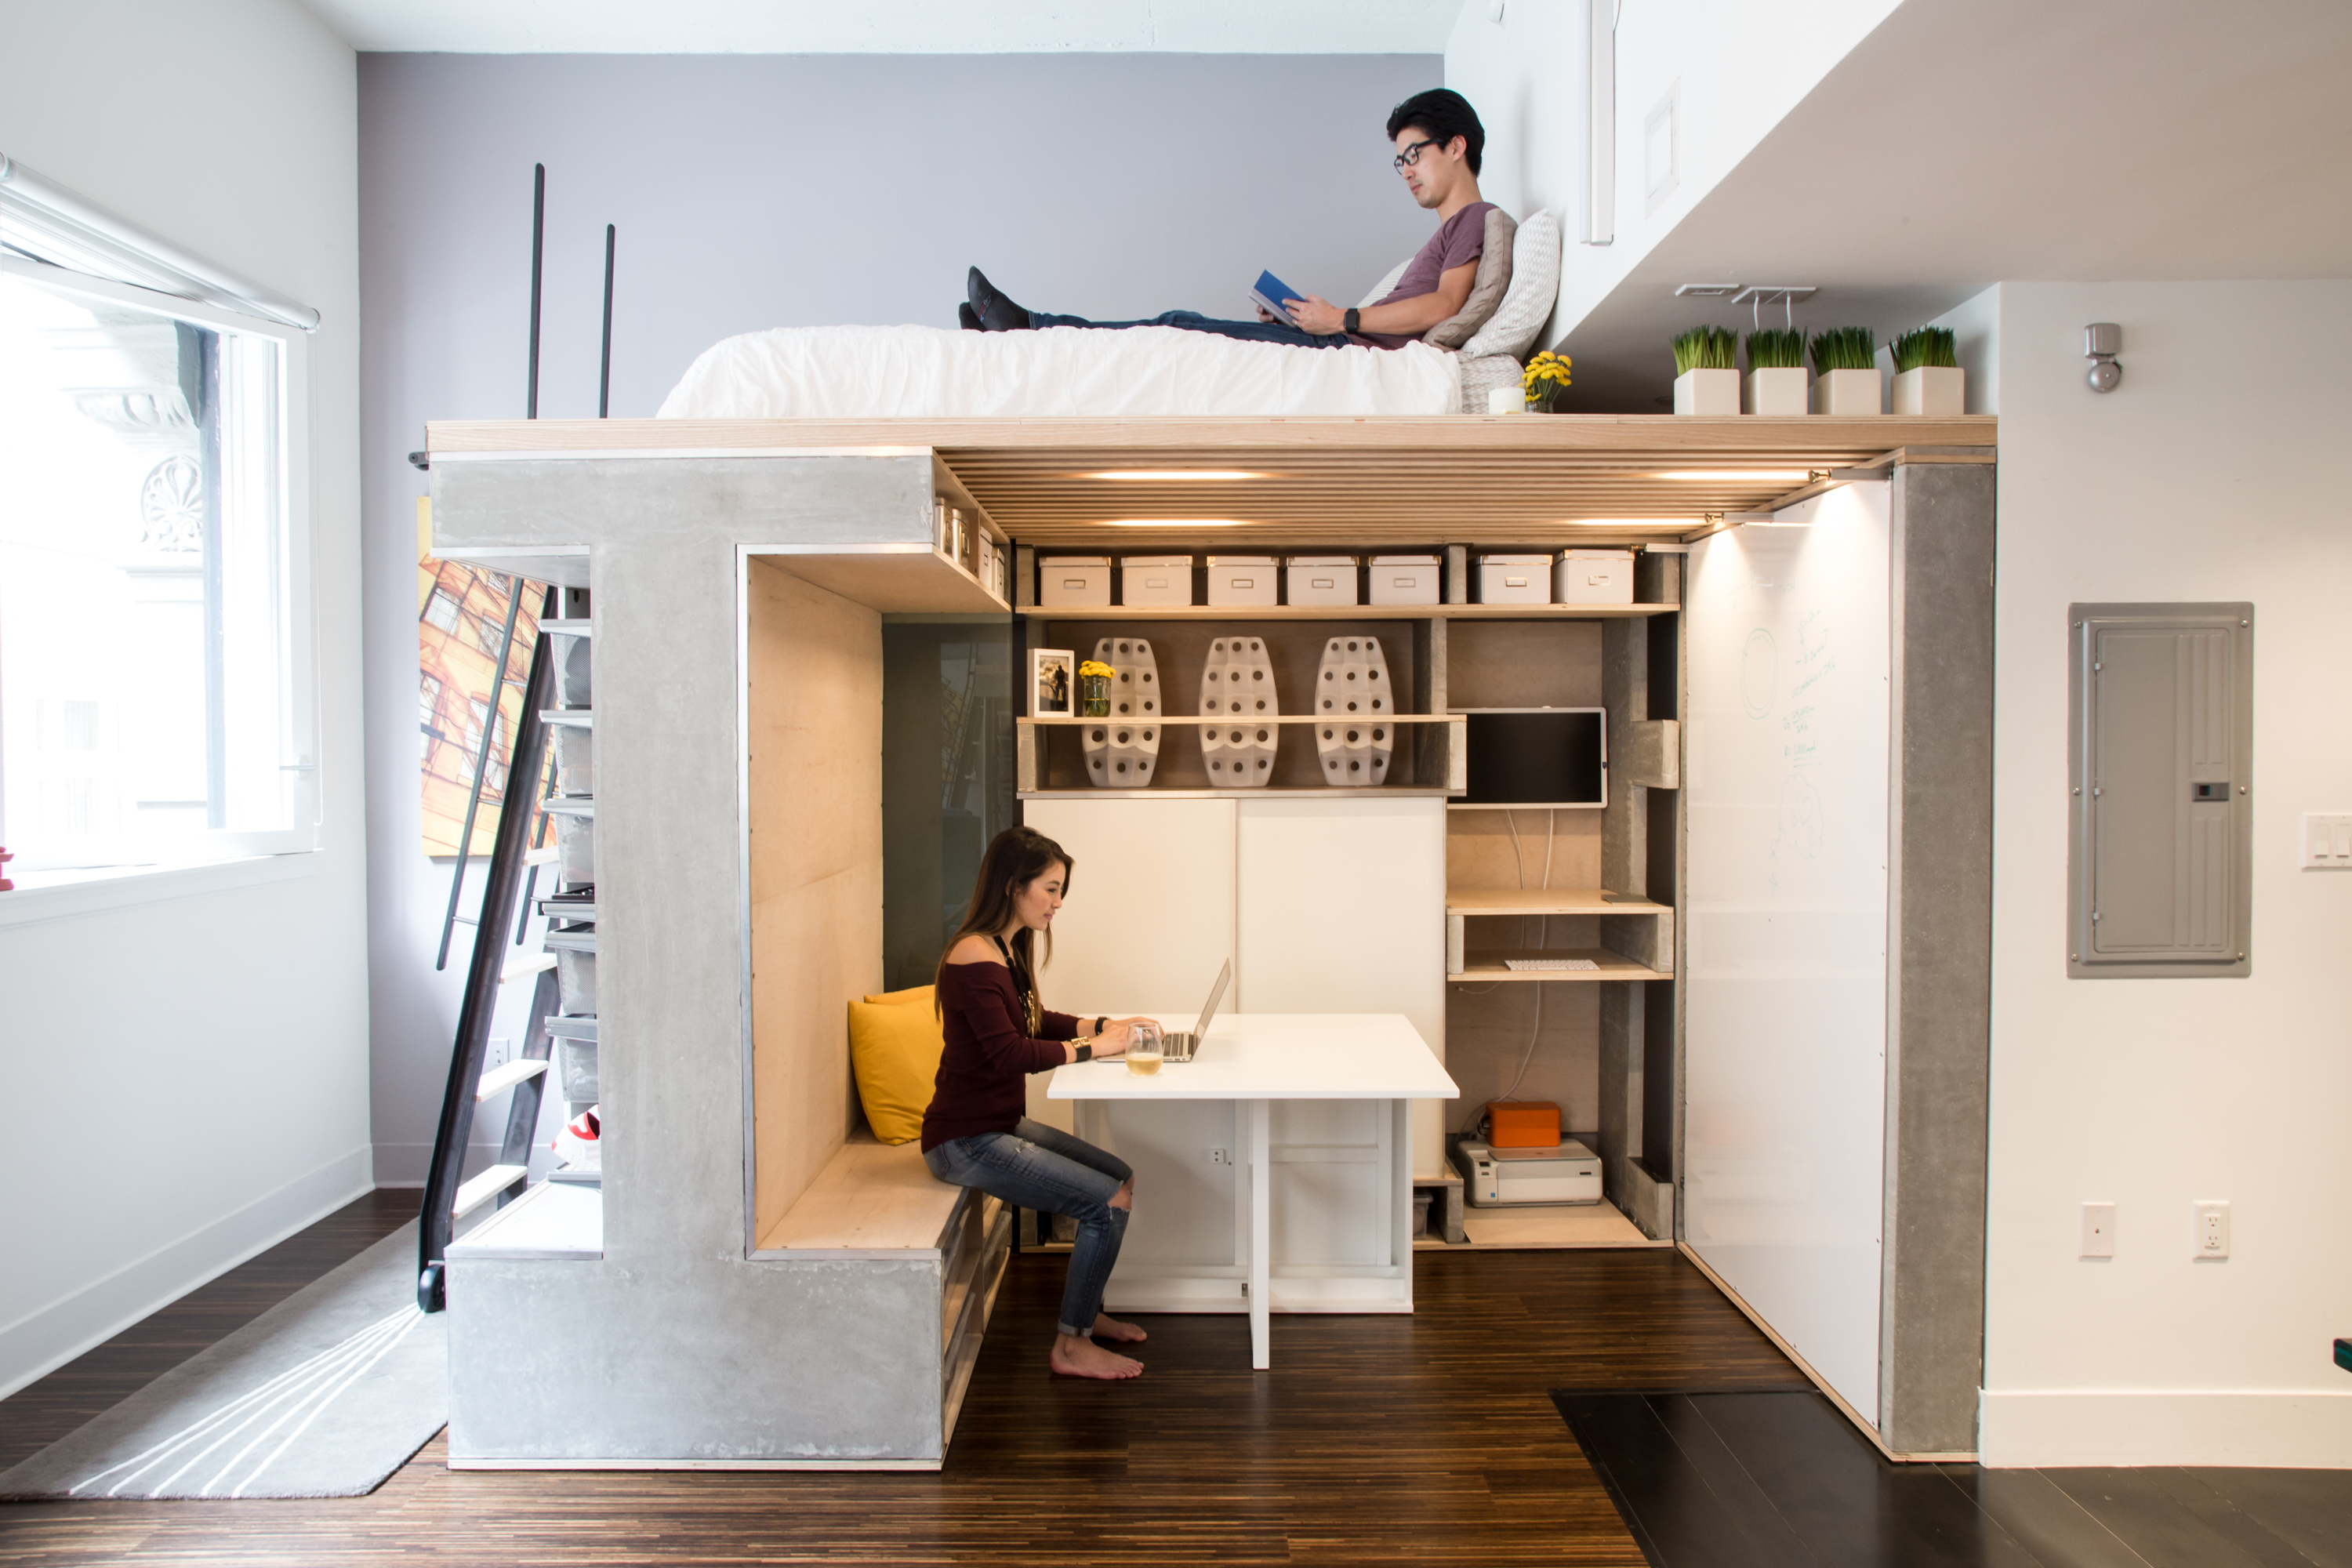 7 apartment in a box designs for tiny spaces curbed for Minimalist living movement